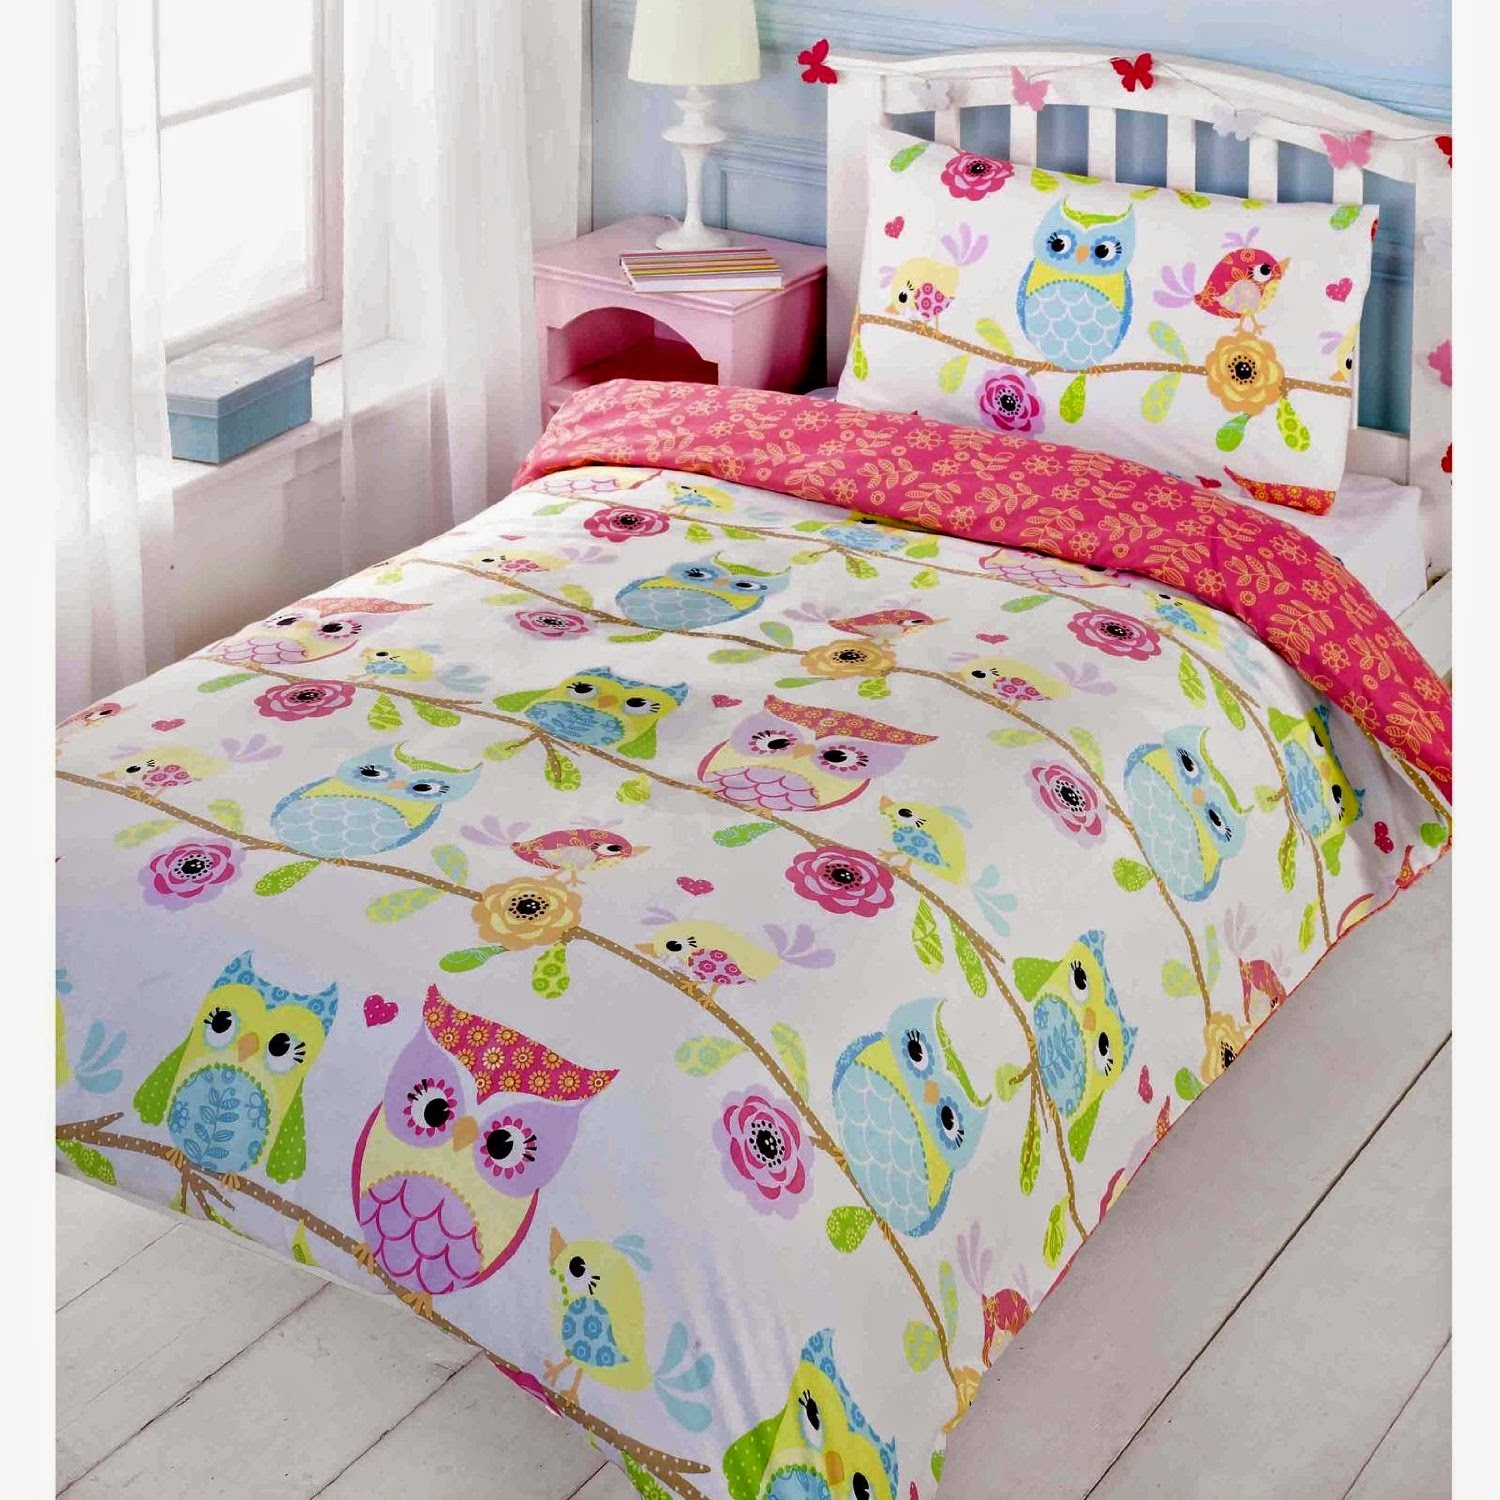 Bedroom Decor Ideas and Designs: Top Ten Owl Bedding Sets